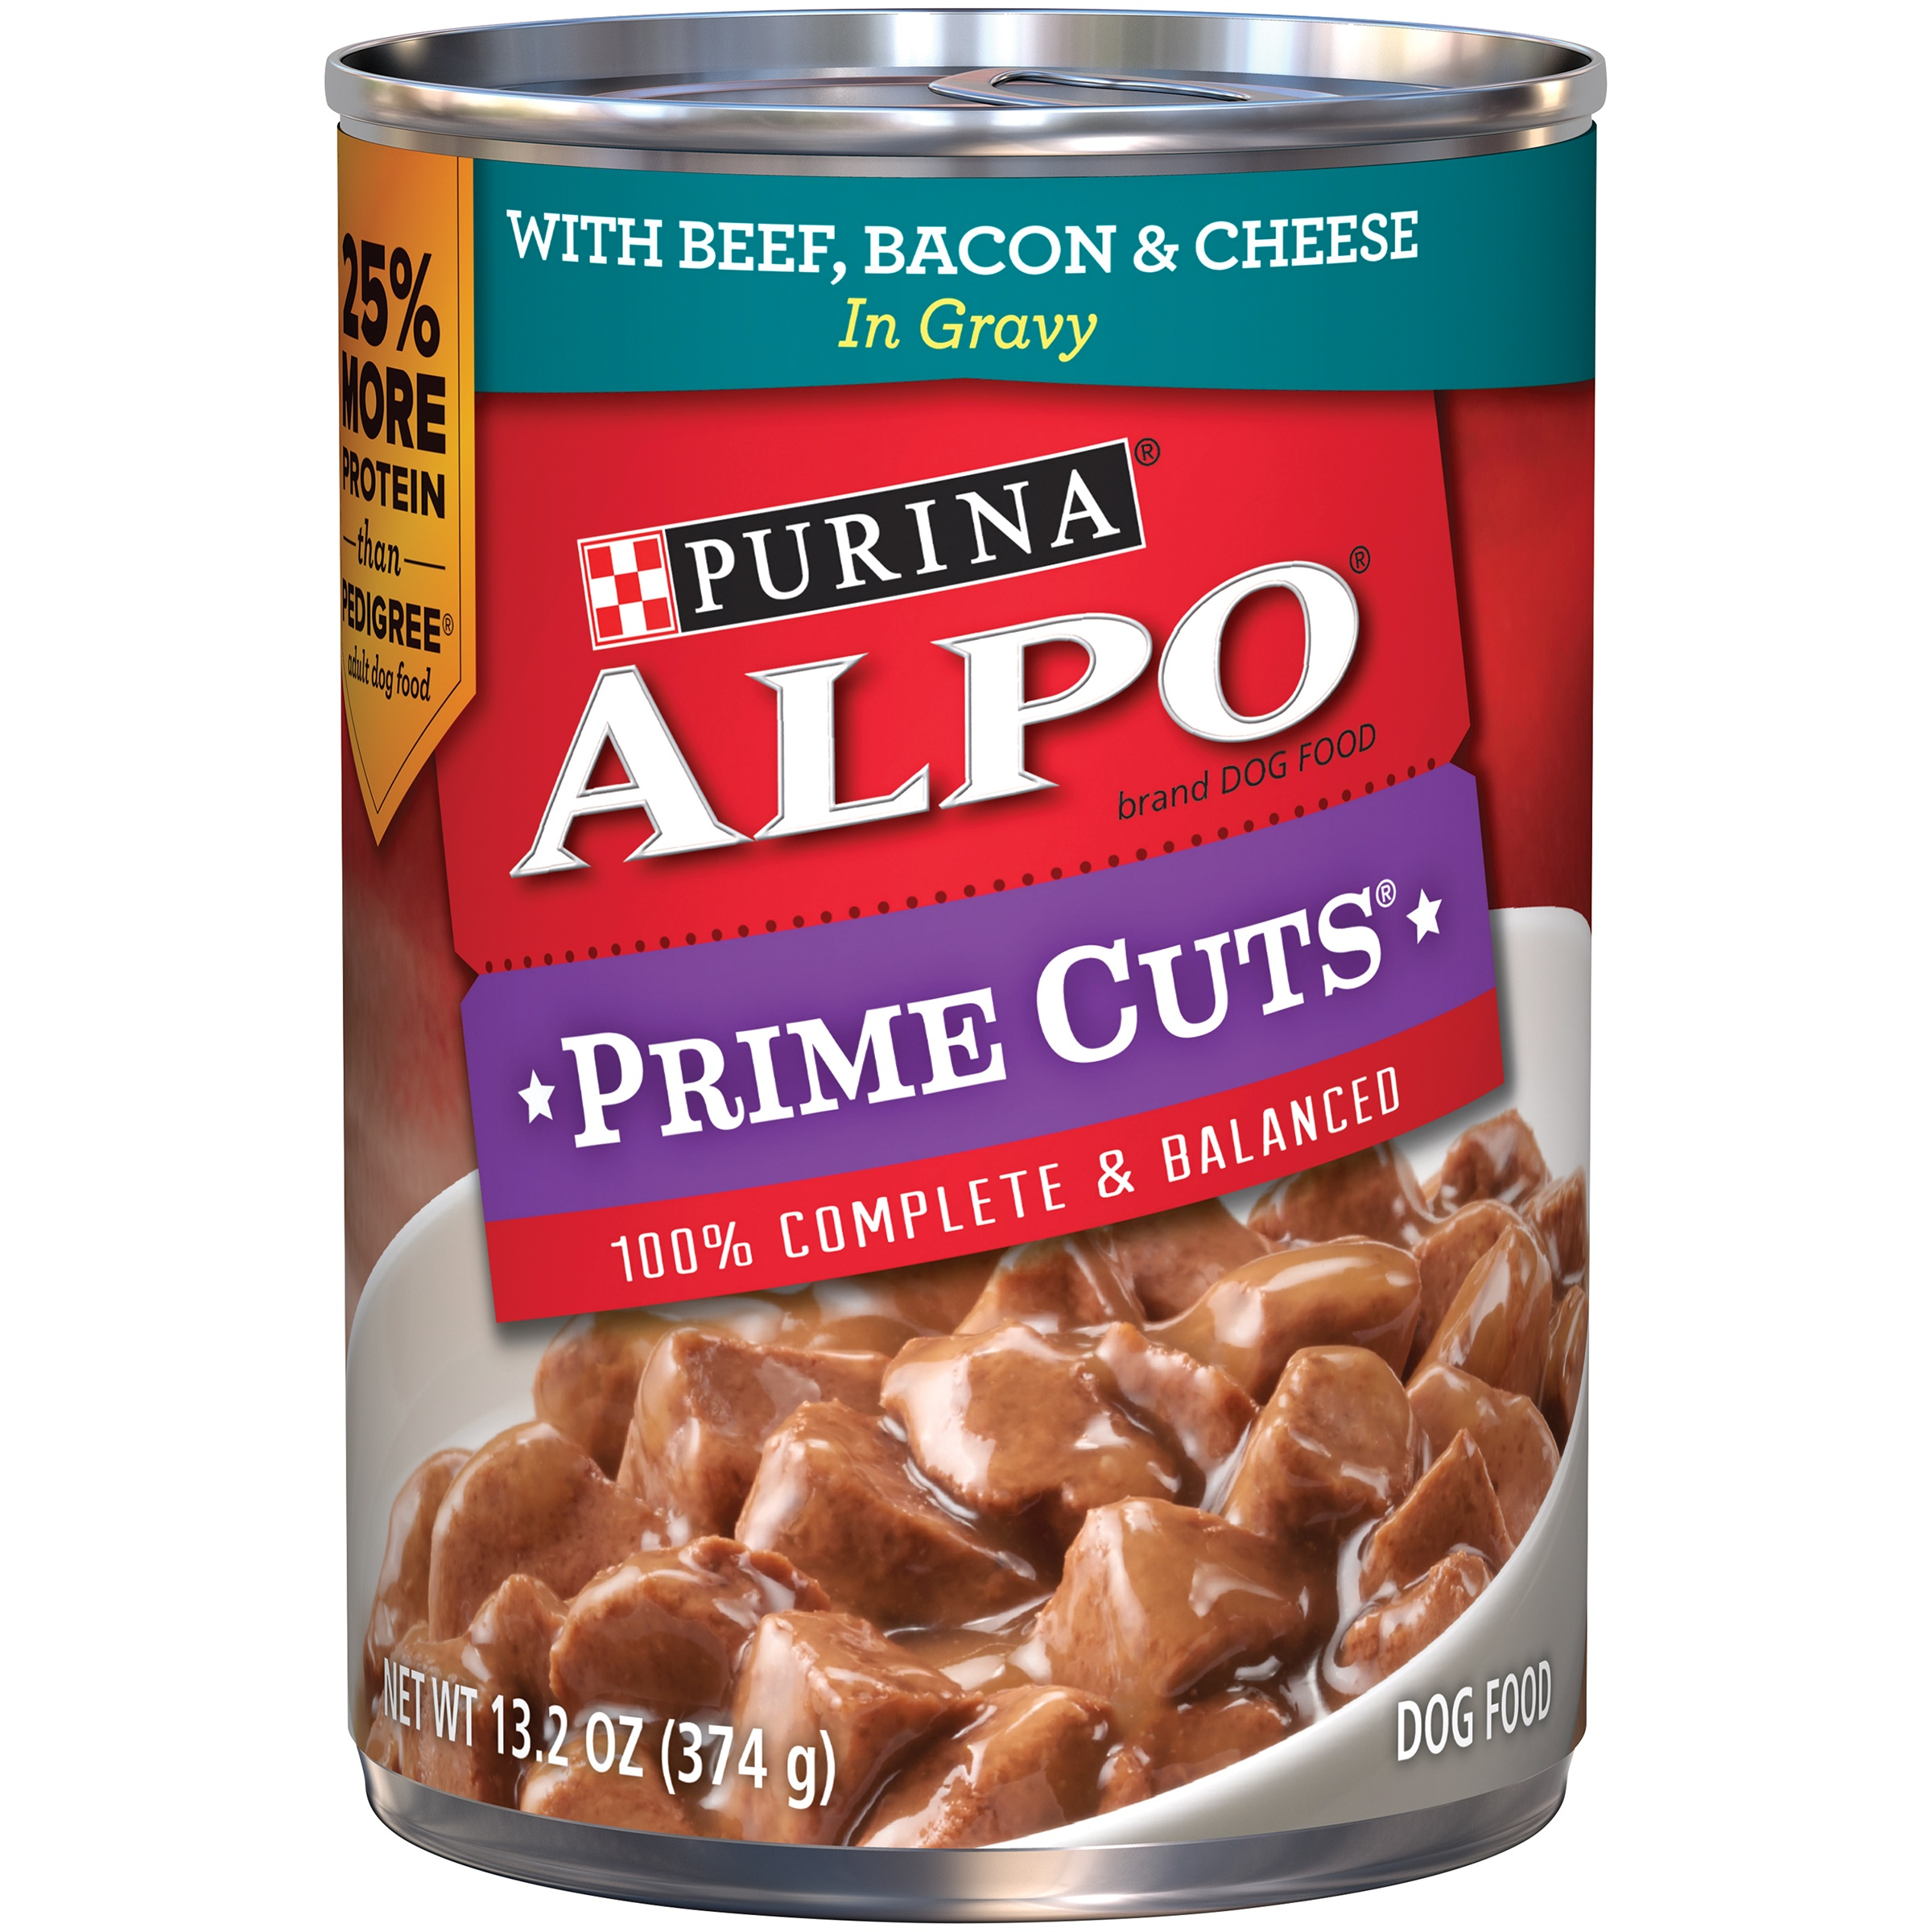 Purina ALPO Prime Cuts Beef, Bacon & Cheese in Gravy Dog Food 13.2 oz. Can